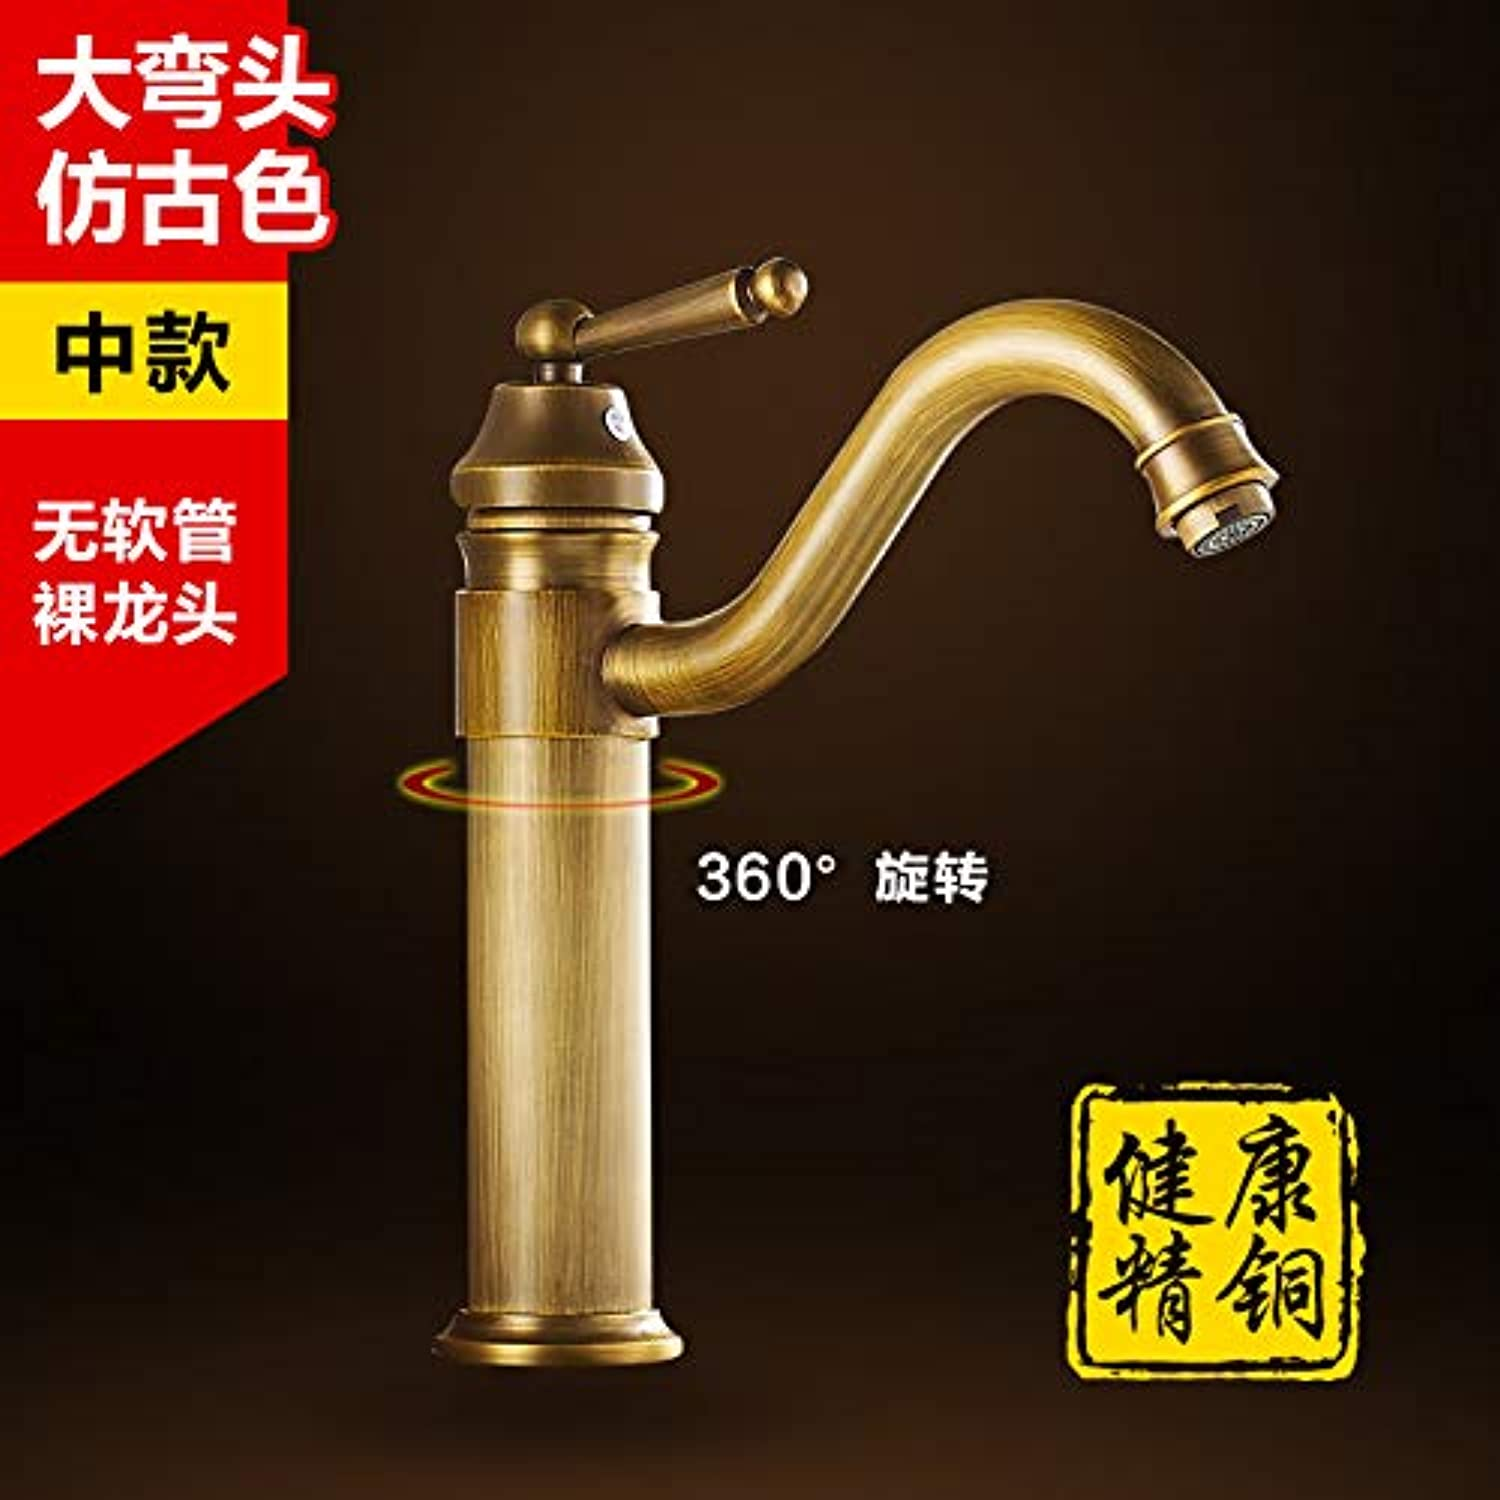 Hlluya Professional Sink Mixer Tap Kitchen Faucet The Antique brass faucet cold water taps plus high surface Sinks Faucets antique faucet, antique, (no hose